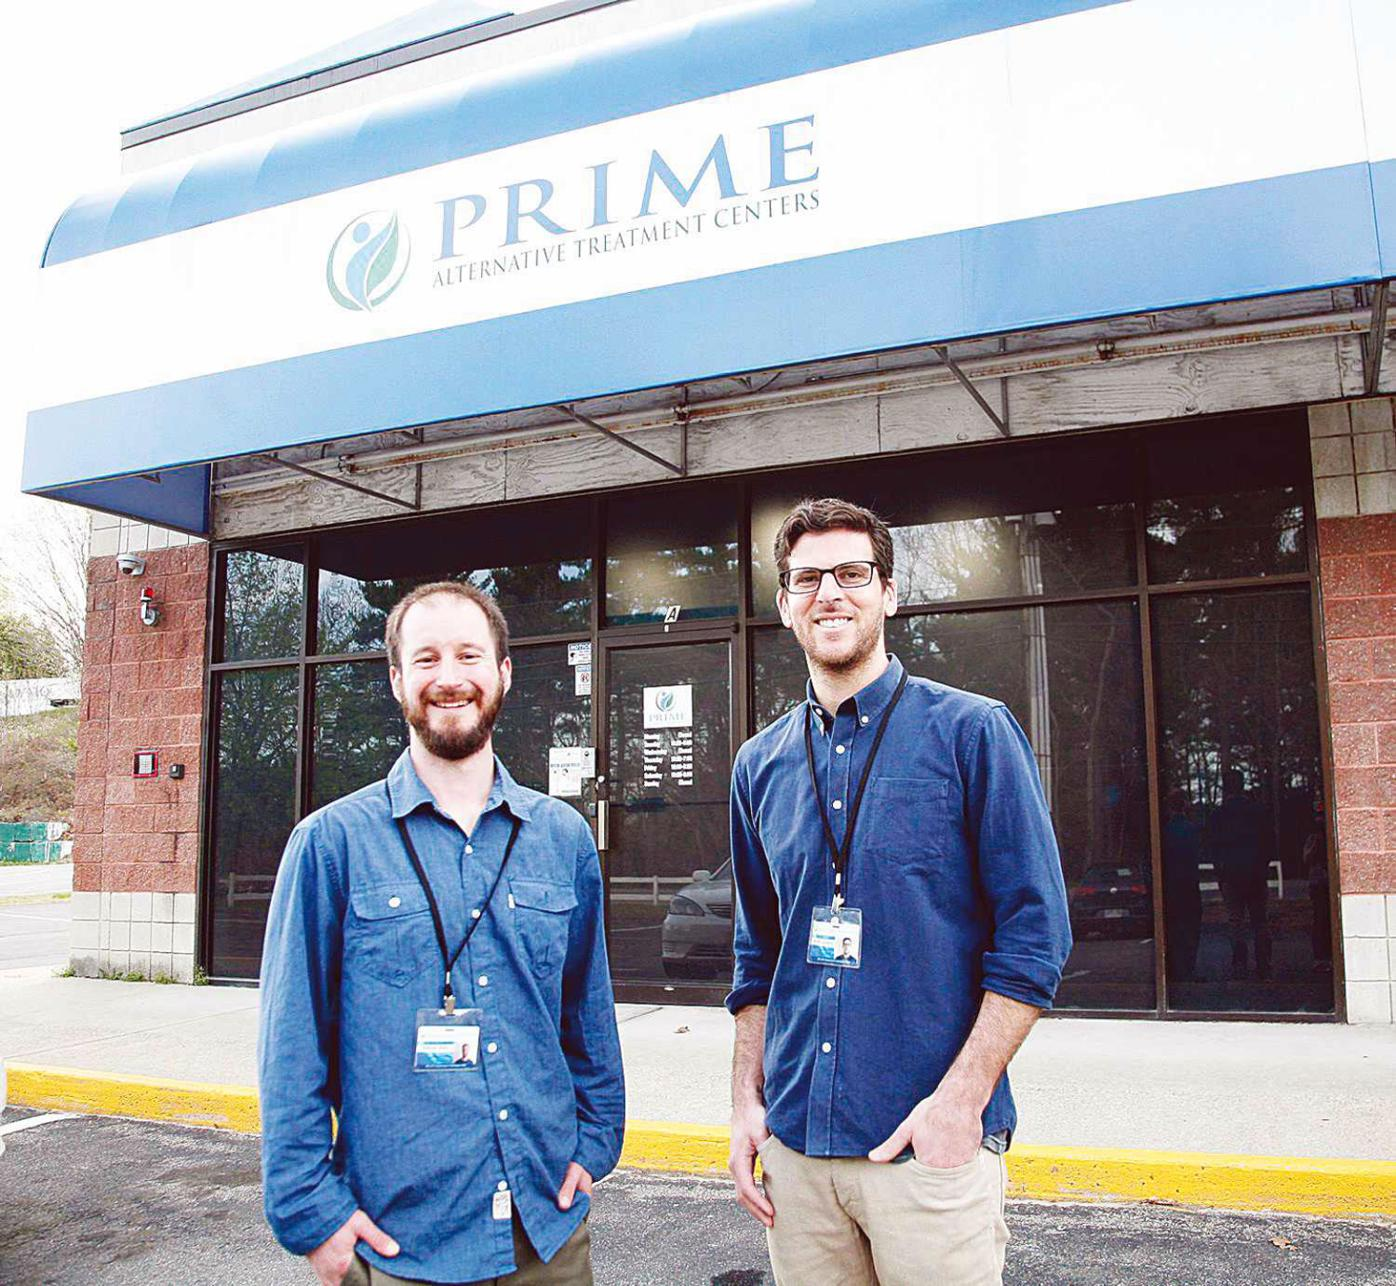 Prime Alternative Treatment Center gets OK to open in Chichester